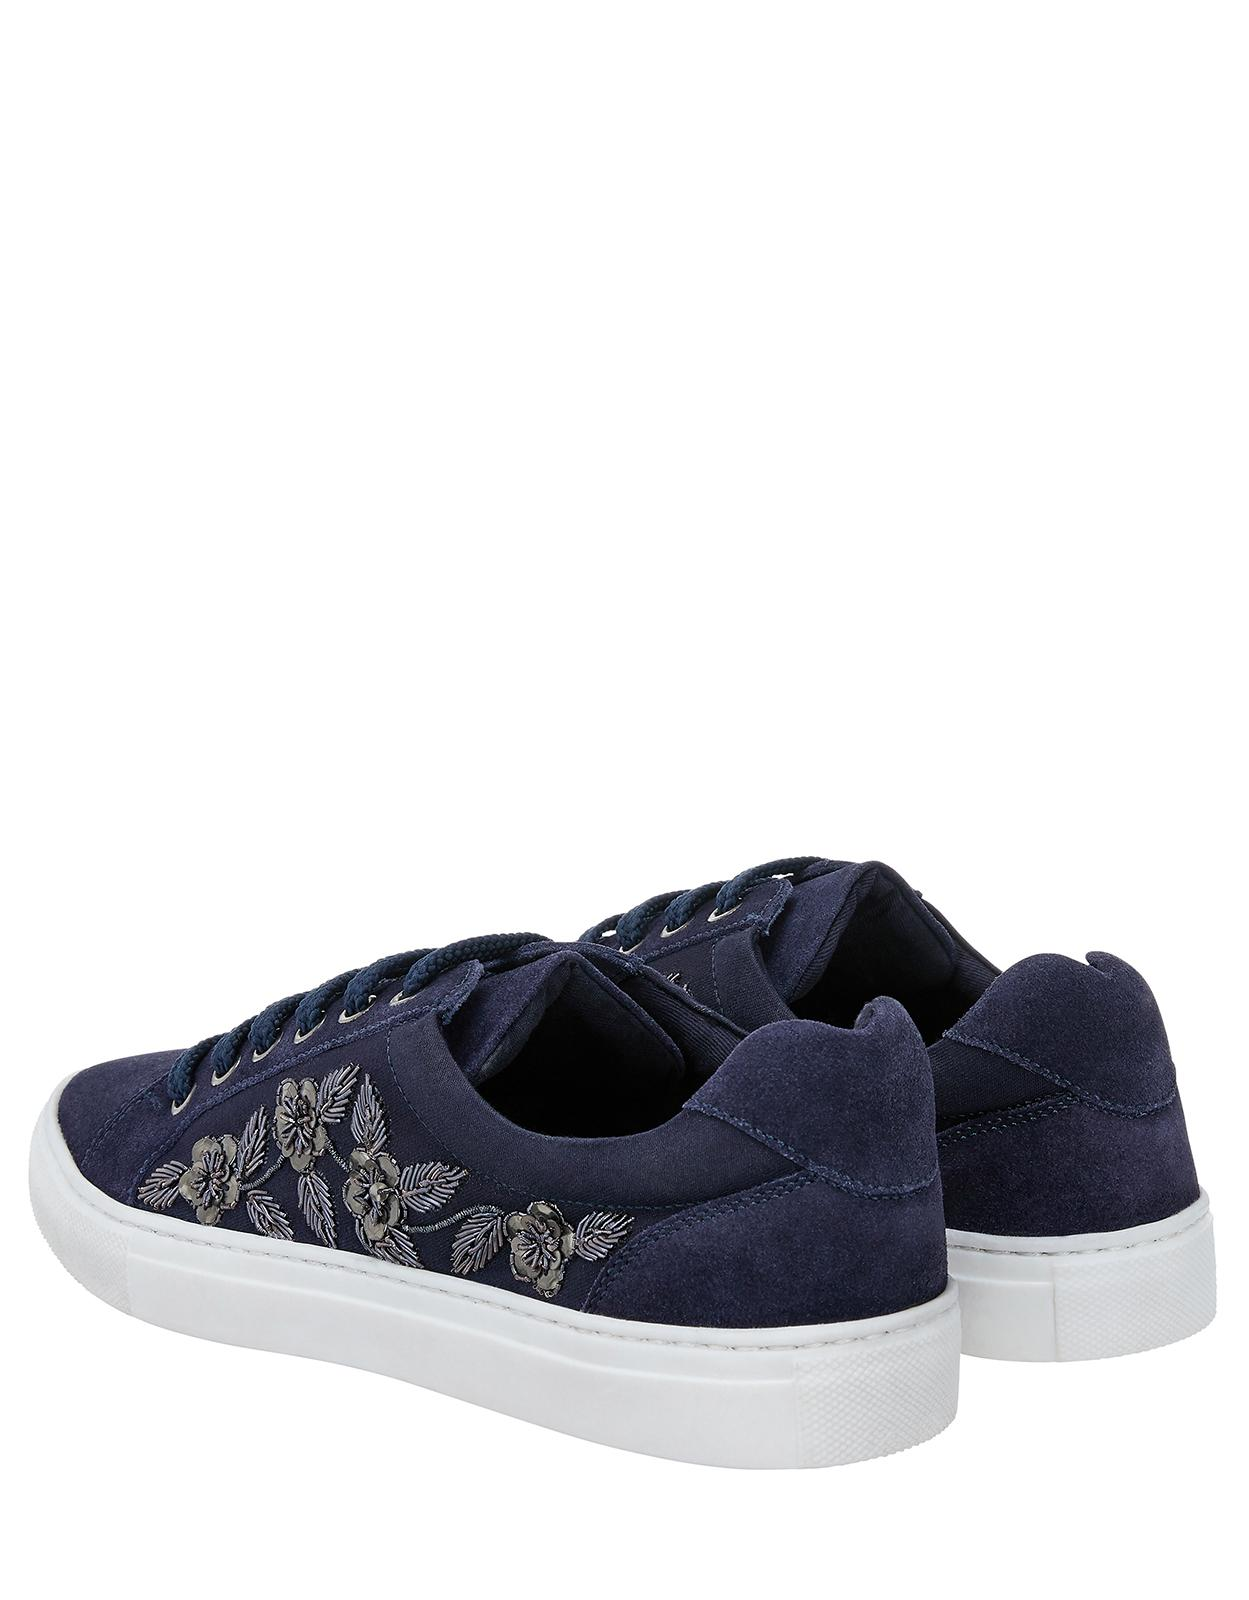 Monsoon Suede Erica Embroidered Trainers in Navy (Blue)